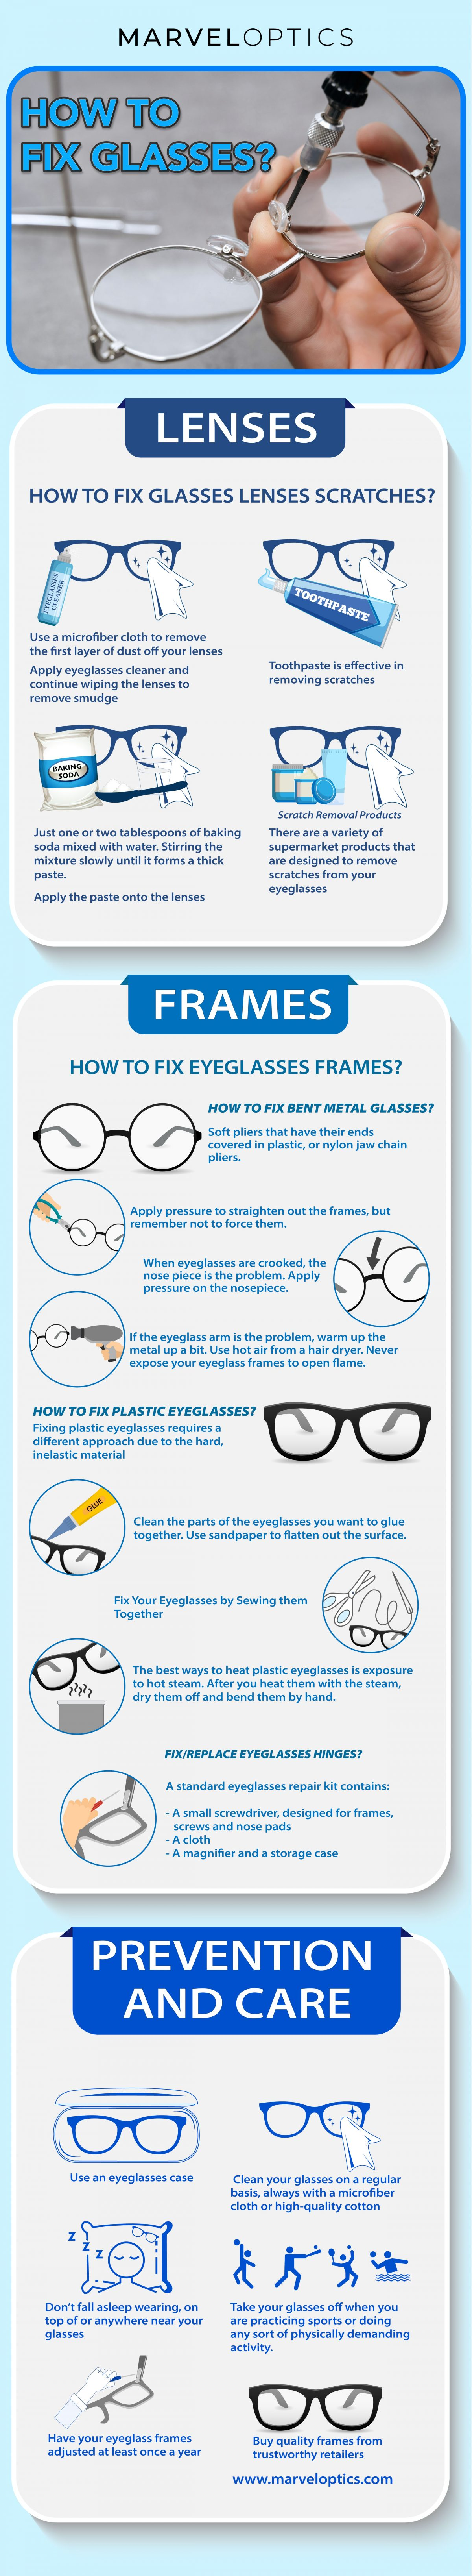 A Complete Guide to Eyeglasses Care and Repair